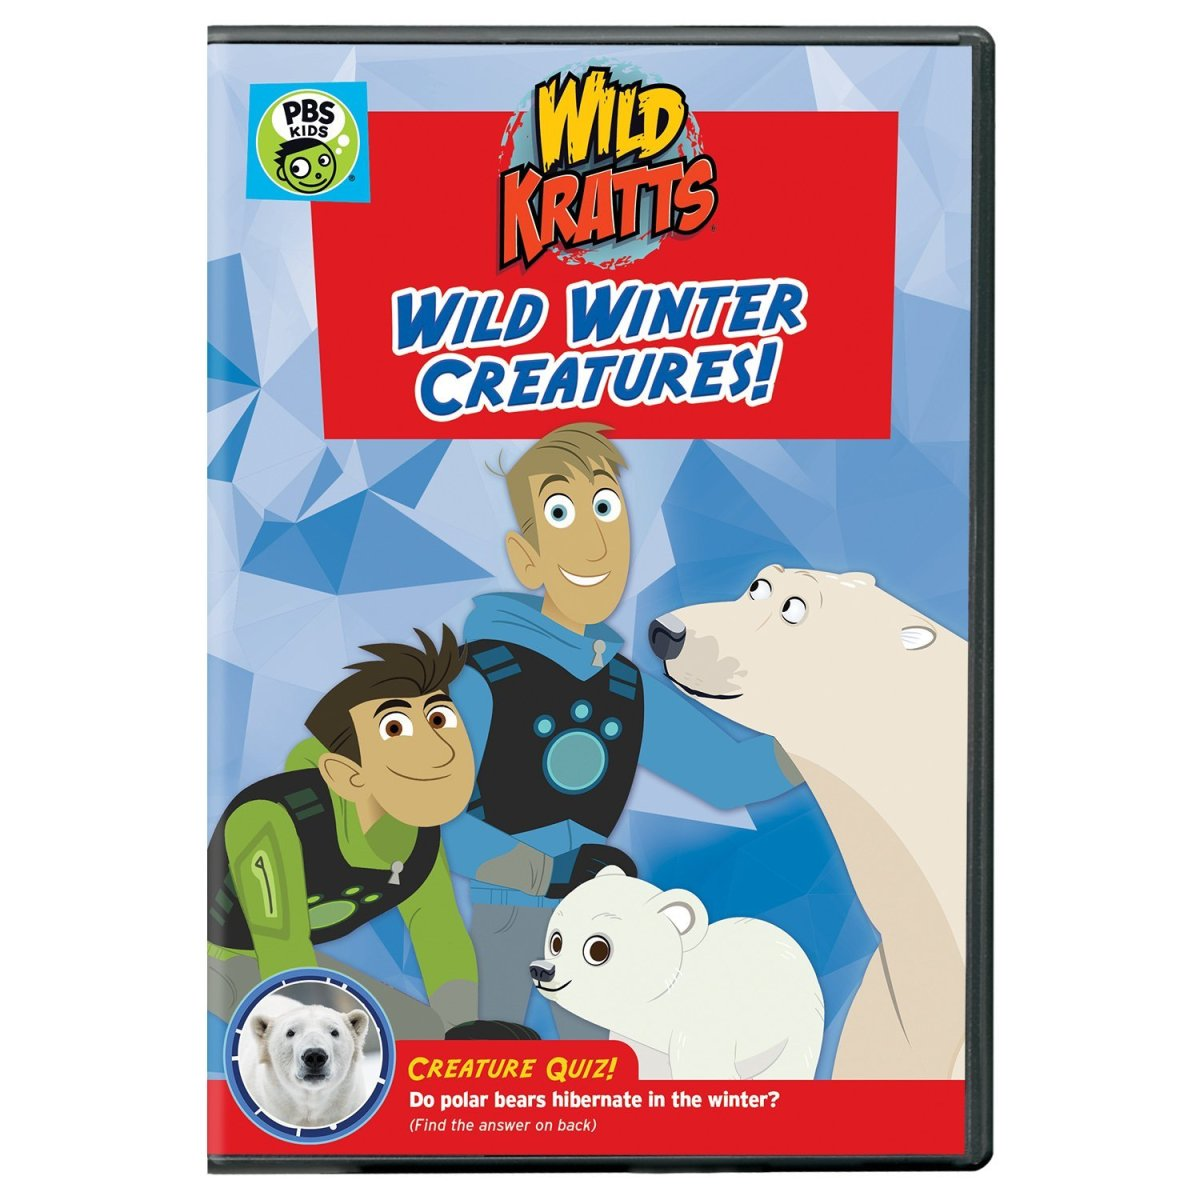 Wild Kratts Wild Winter Creatures